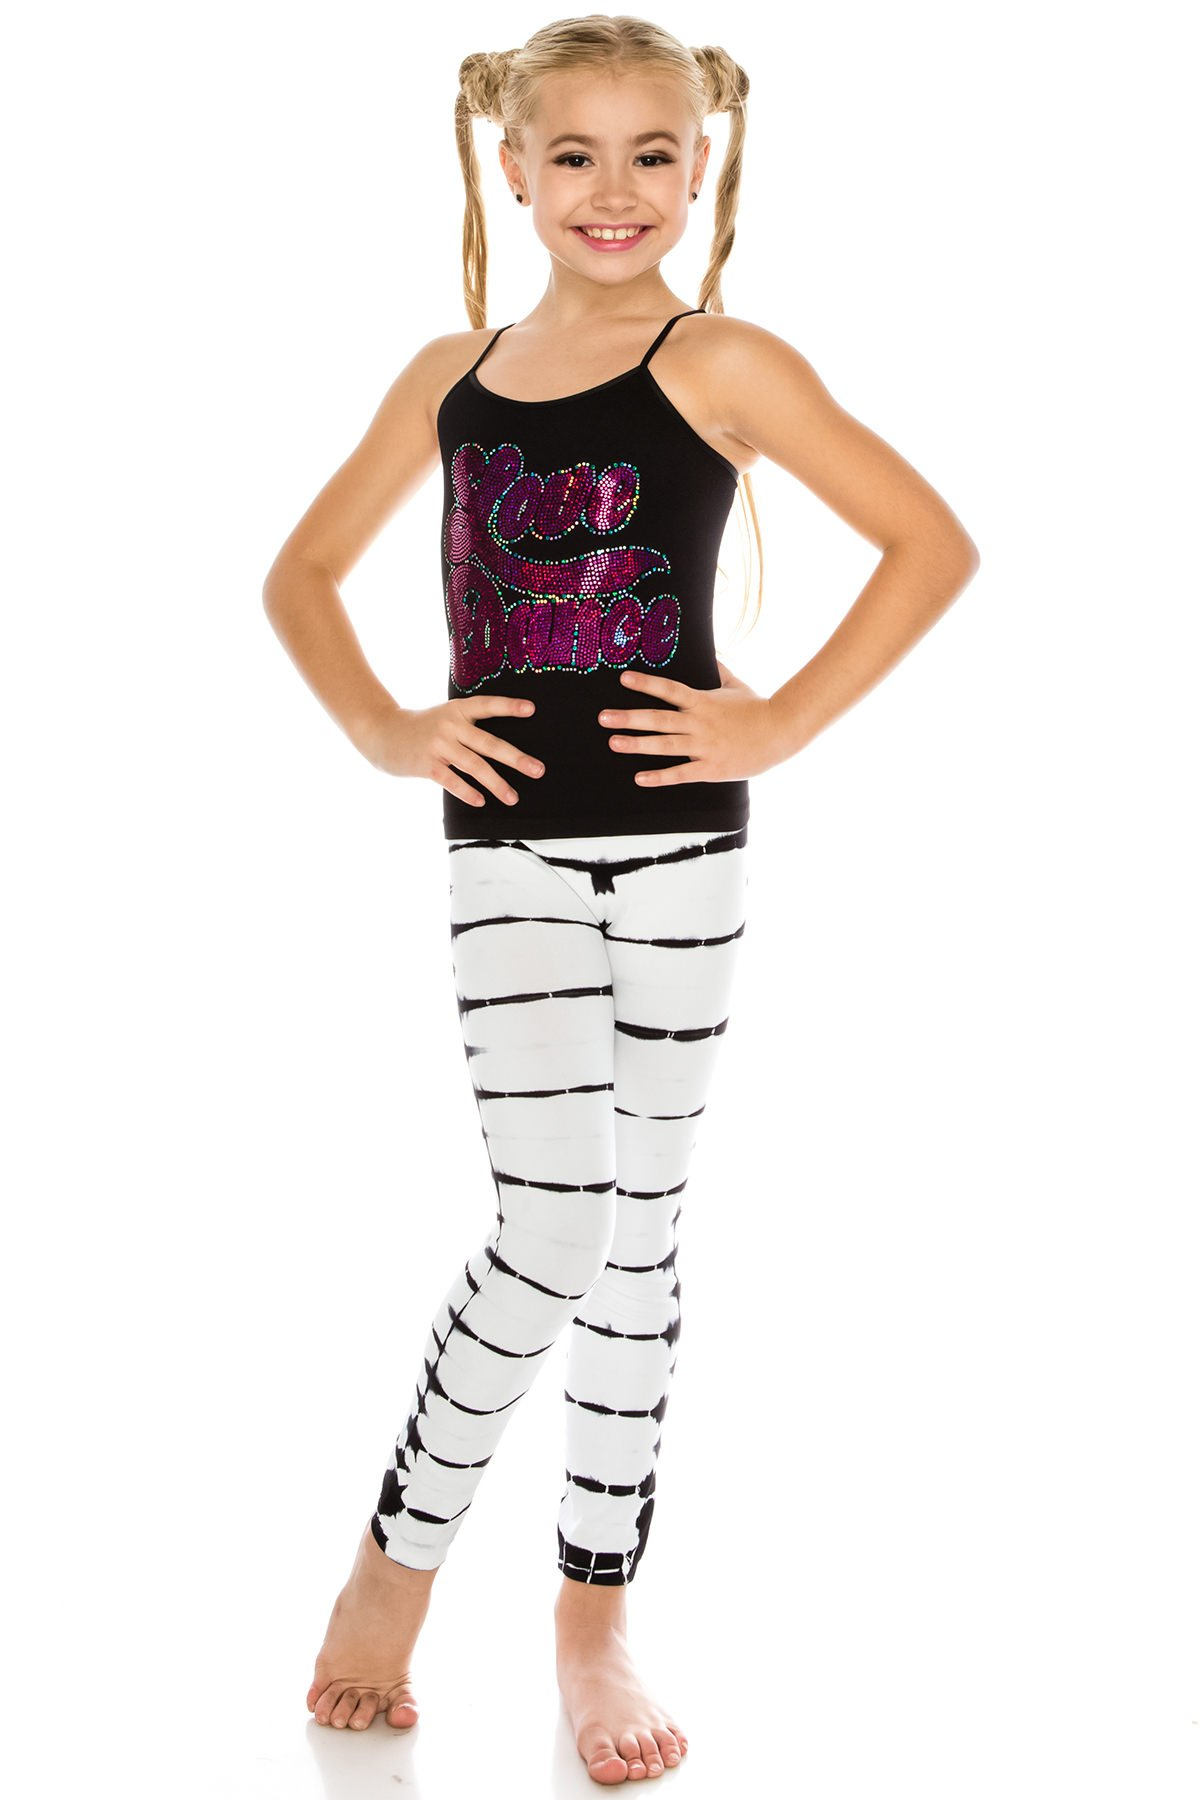 Kurve Kids 2-Piece Dance Outfit - One Size Age 4 To 9 - Made In USA- (Love Dance FS Tie Dye Set, One Size (4-9))